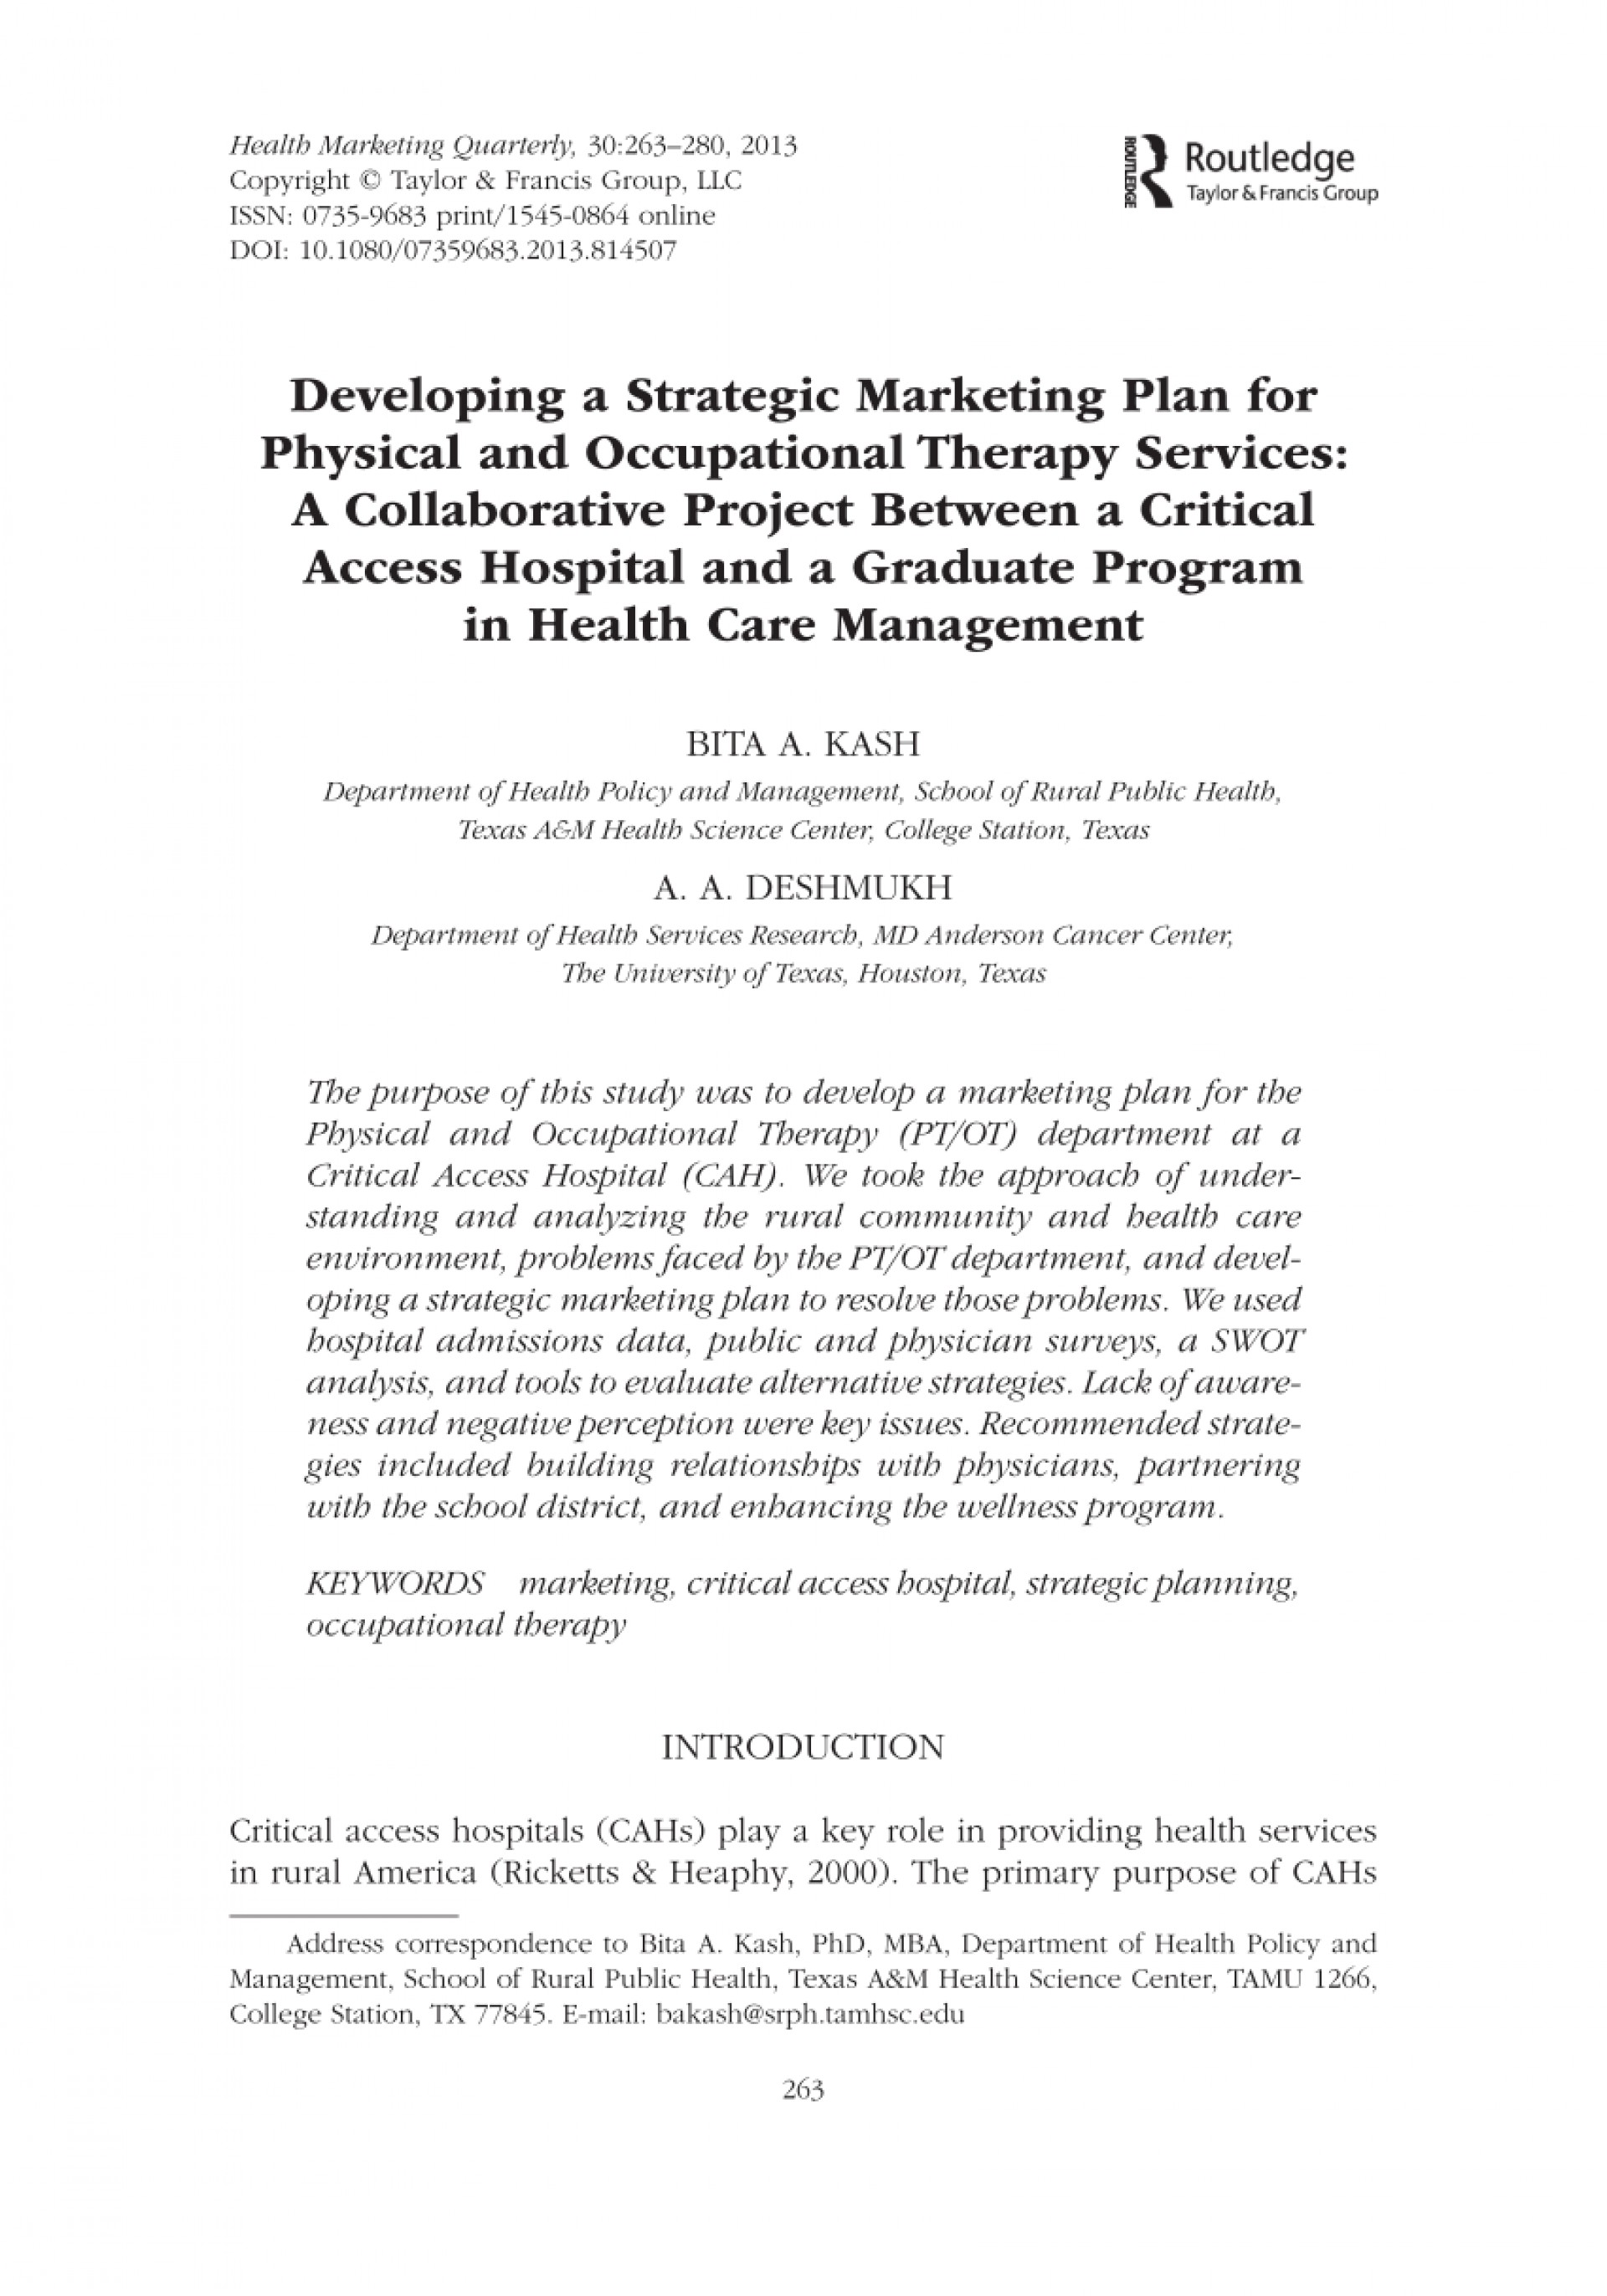 006 Research Paper On Cancer Marketing Plan Mba Image Hd Largepreview For Admission Singular Article Cells Articles Drugs 1920